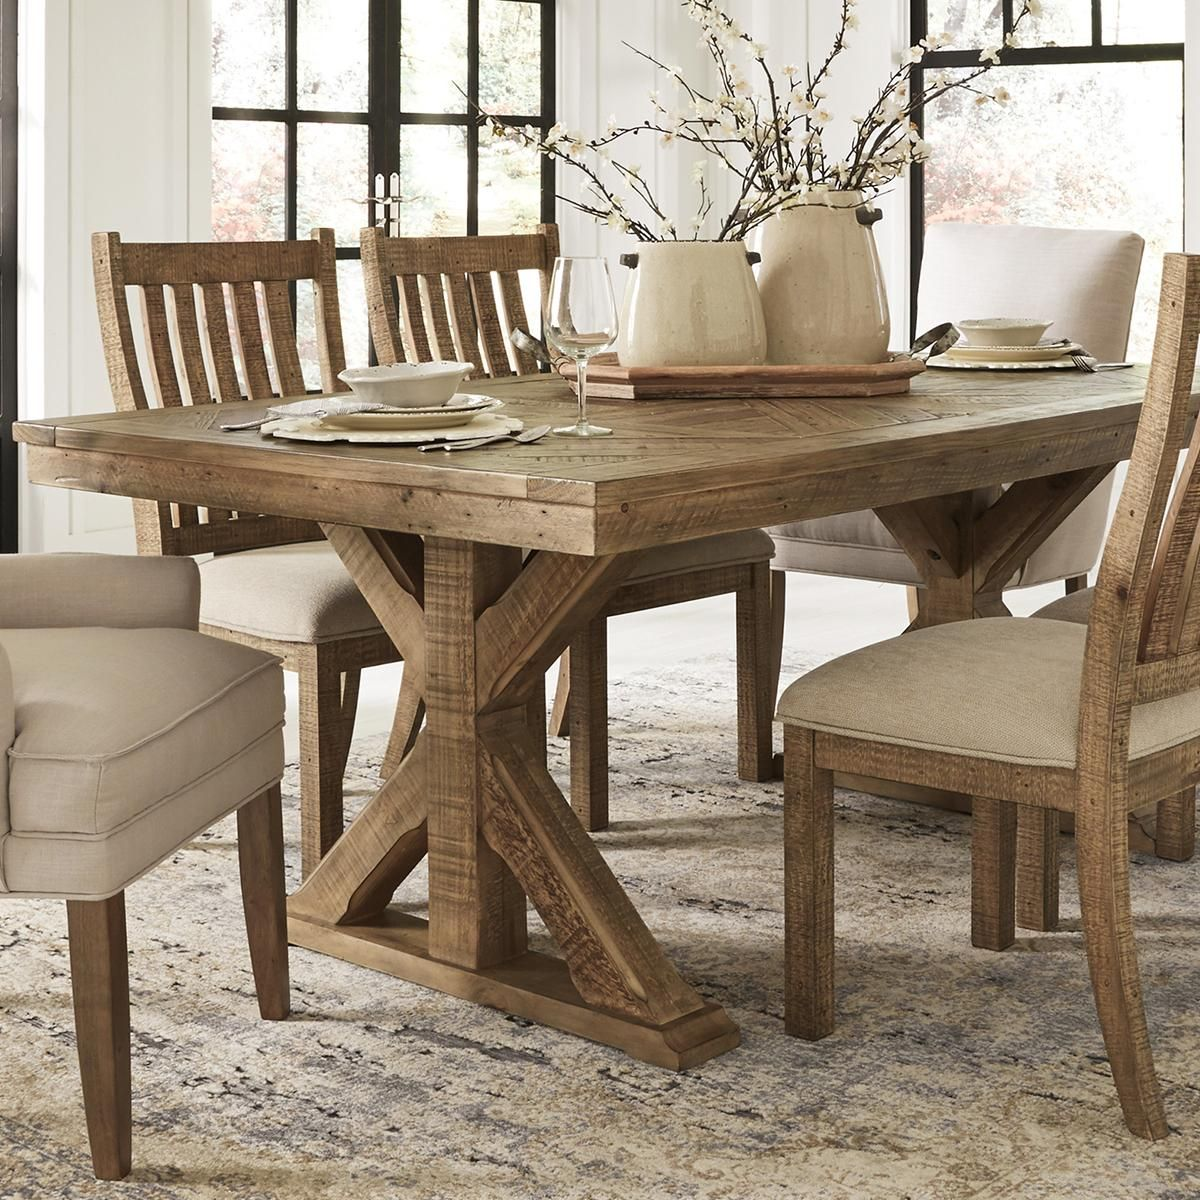 Signature Design By Ashley Grindleburg Rectangular Dining Room Table In Light Brown Table Rectangular Dining Room Table Rectangular Dining Set Pub Table Sets